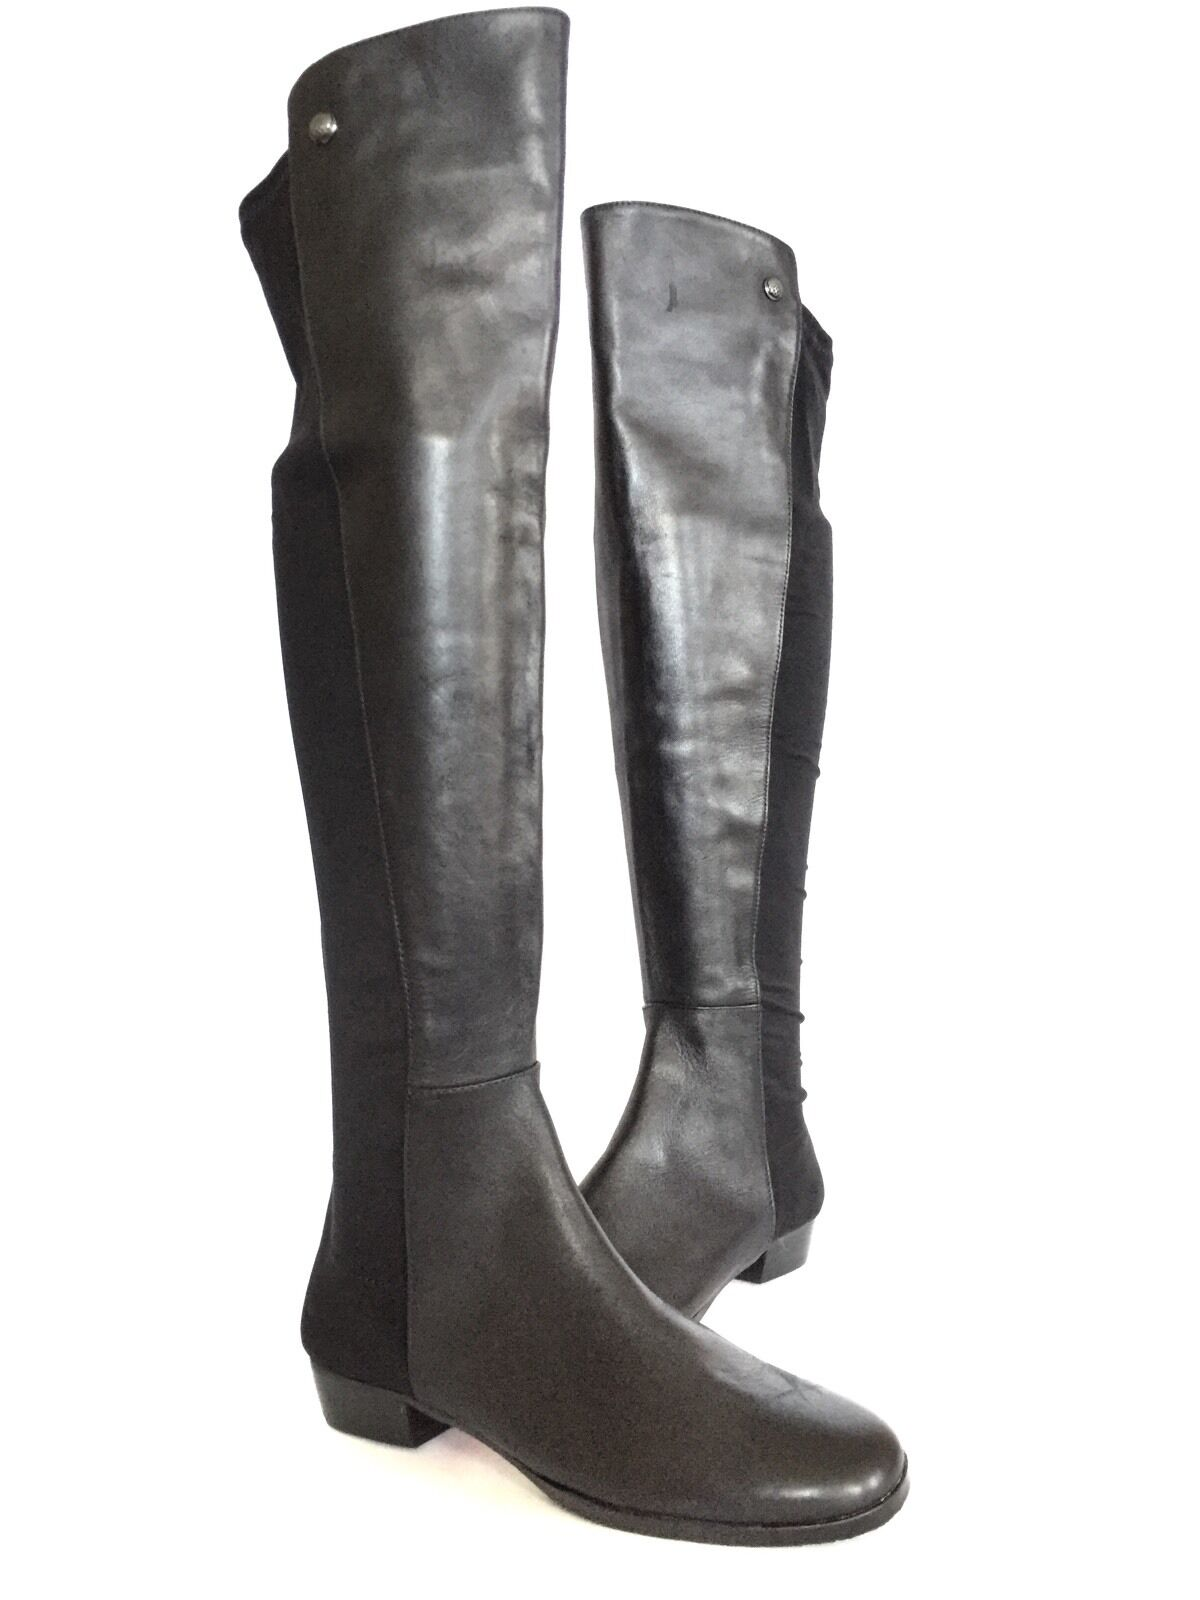 Women's Vince Camuto Karita Over the Knee Stretch Black Leather Boots Size 5 M*